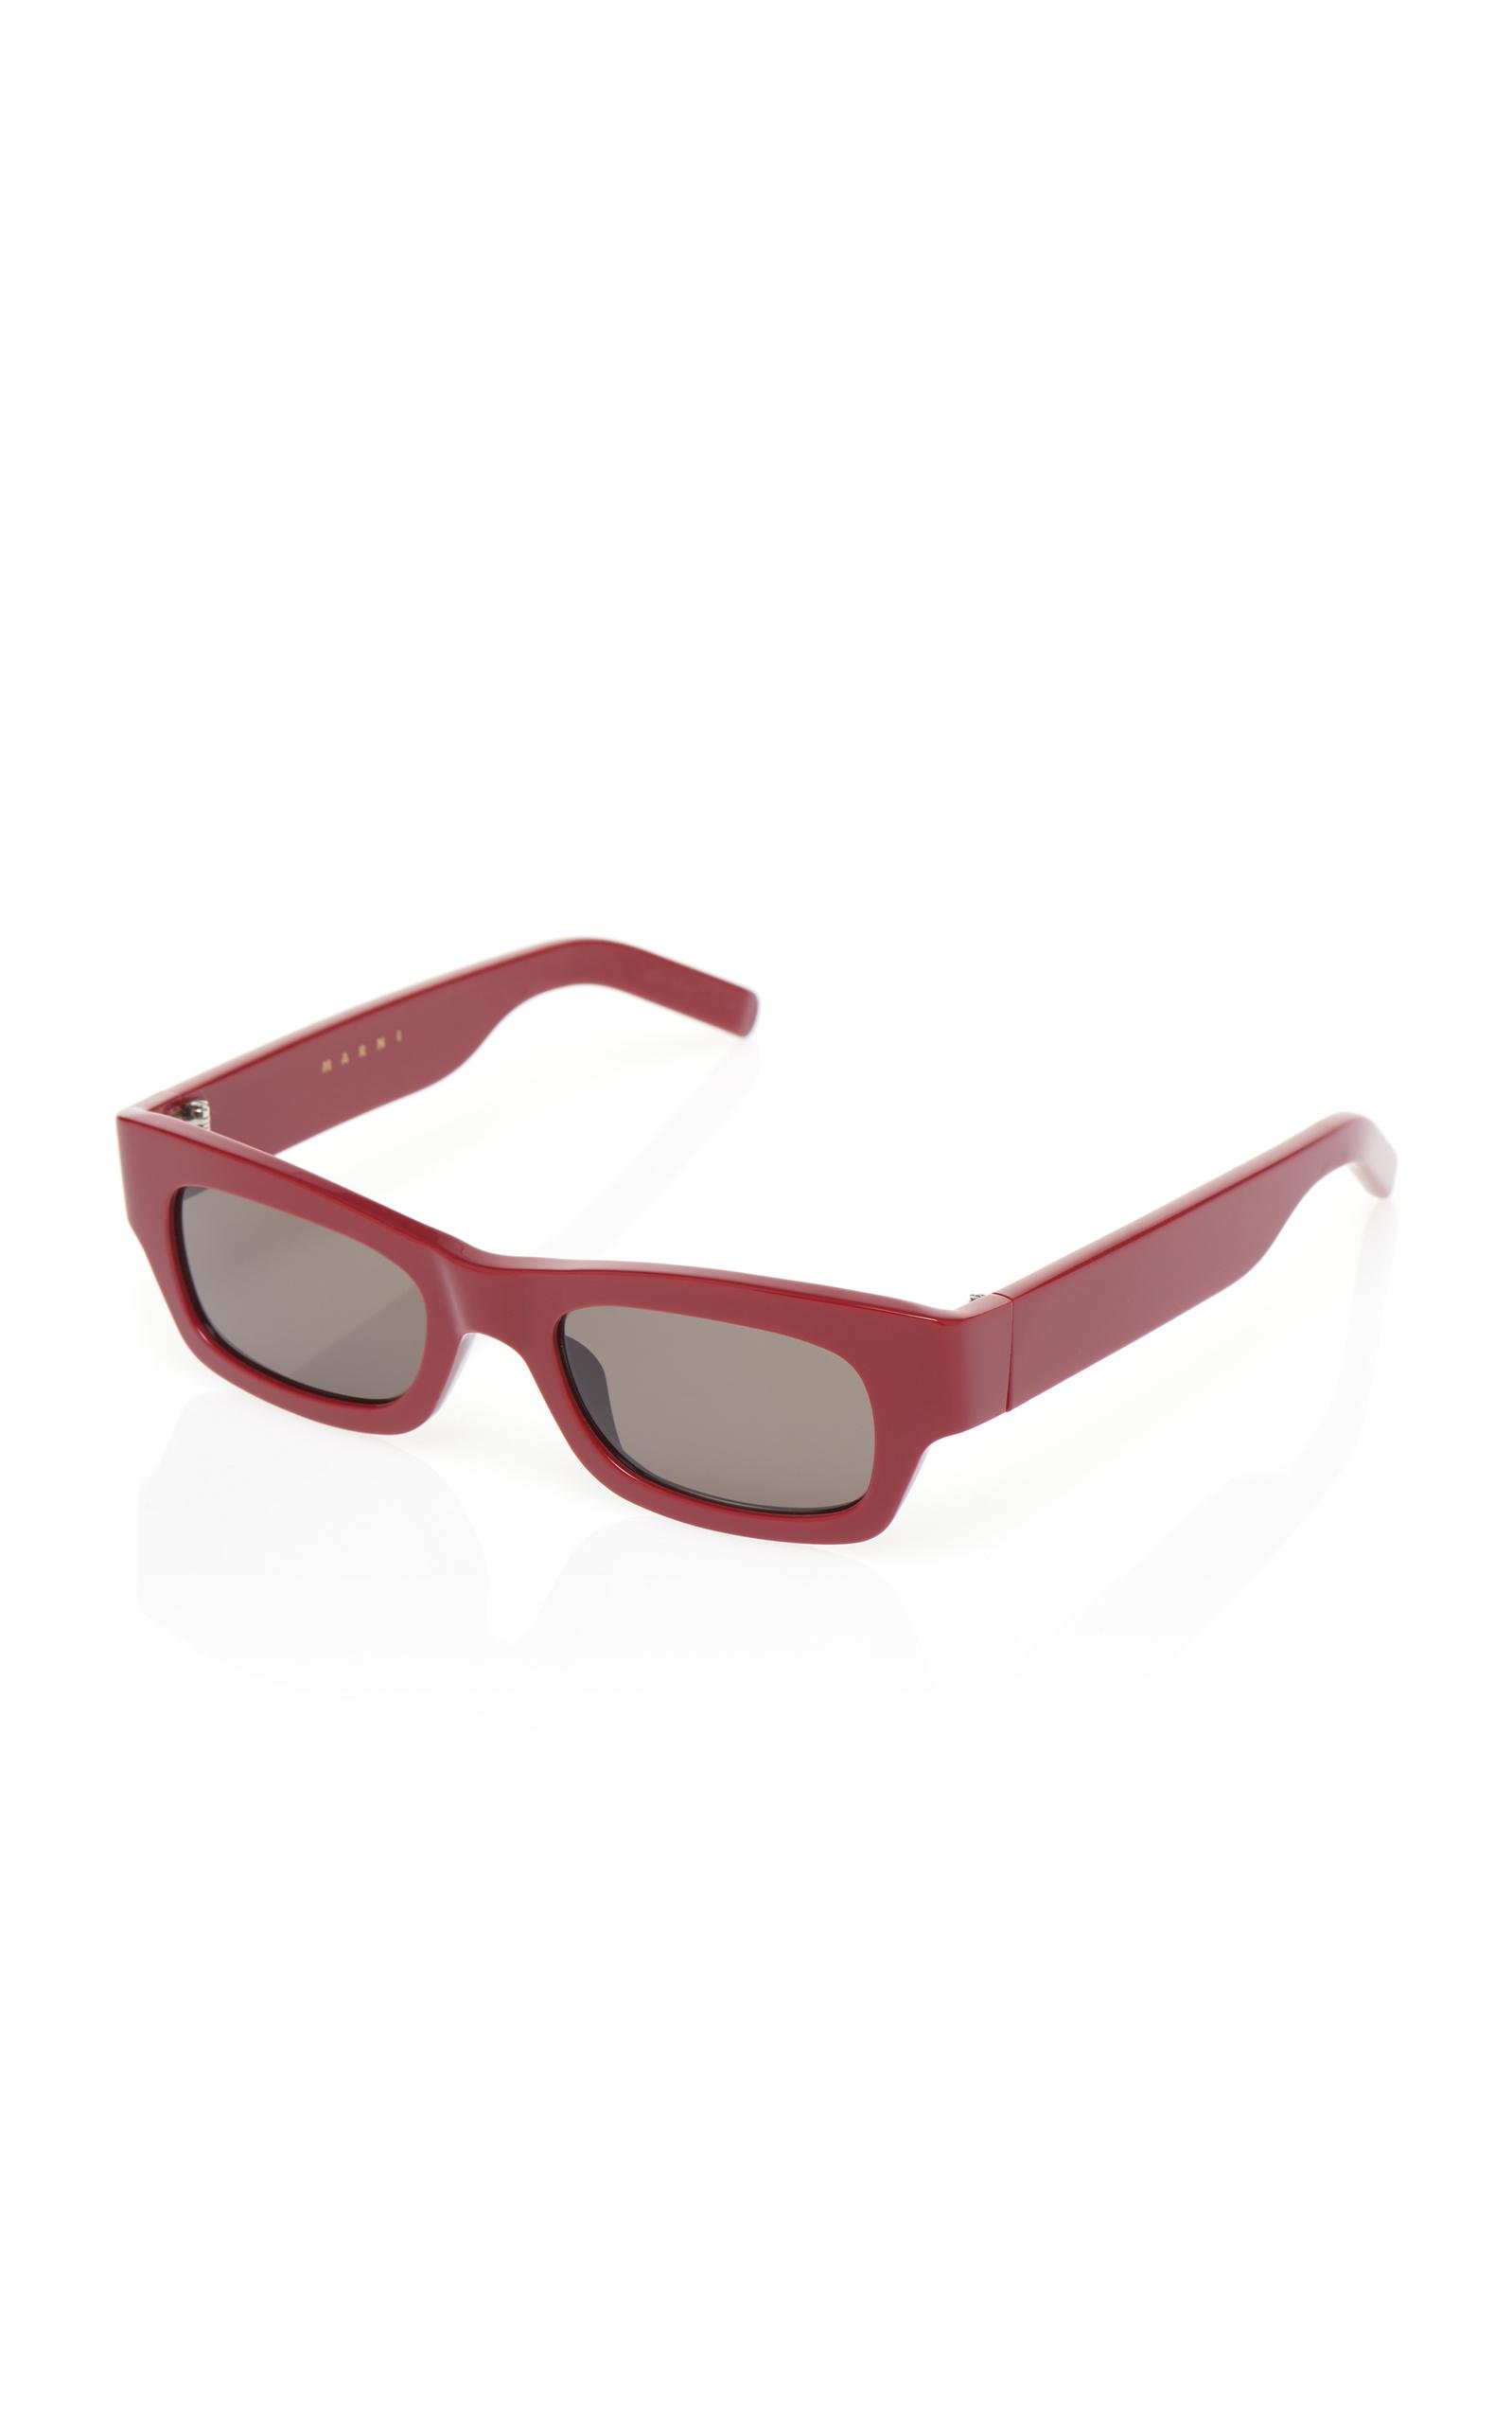 Marni The Sleek Sunglasses in Red